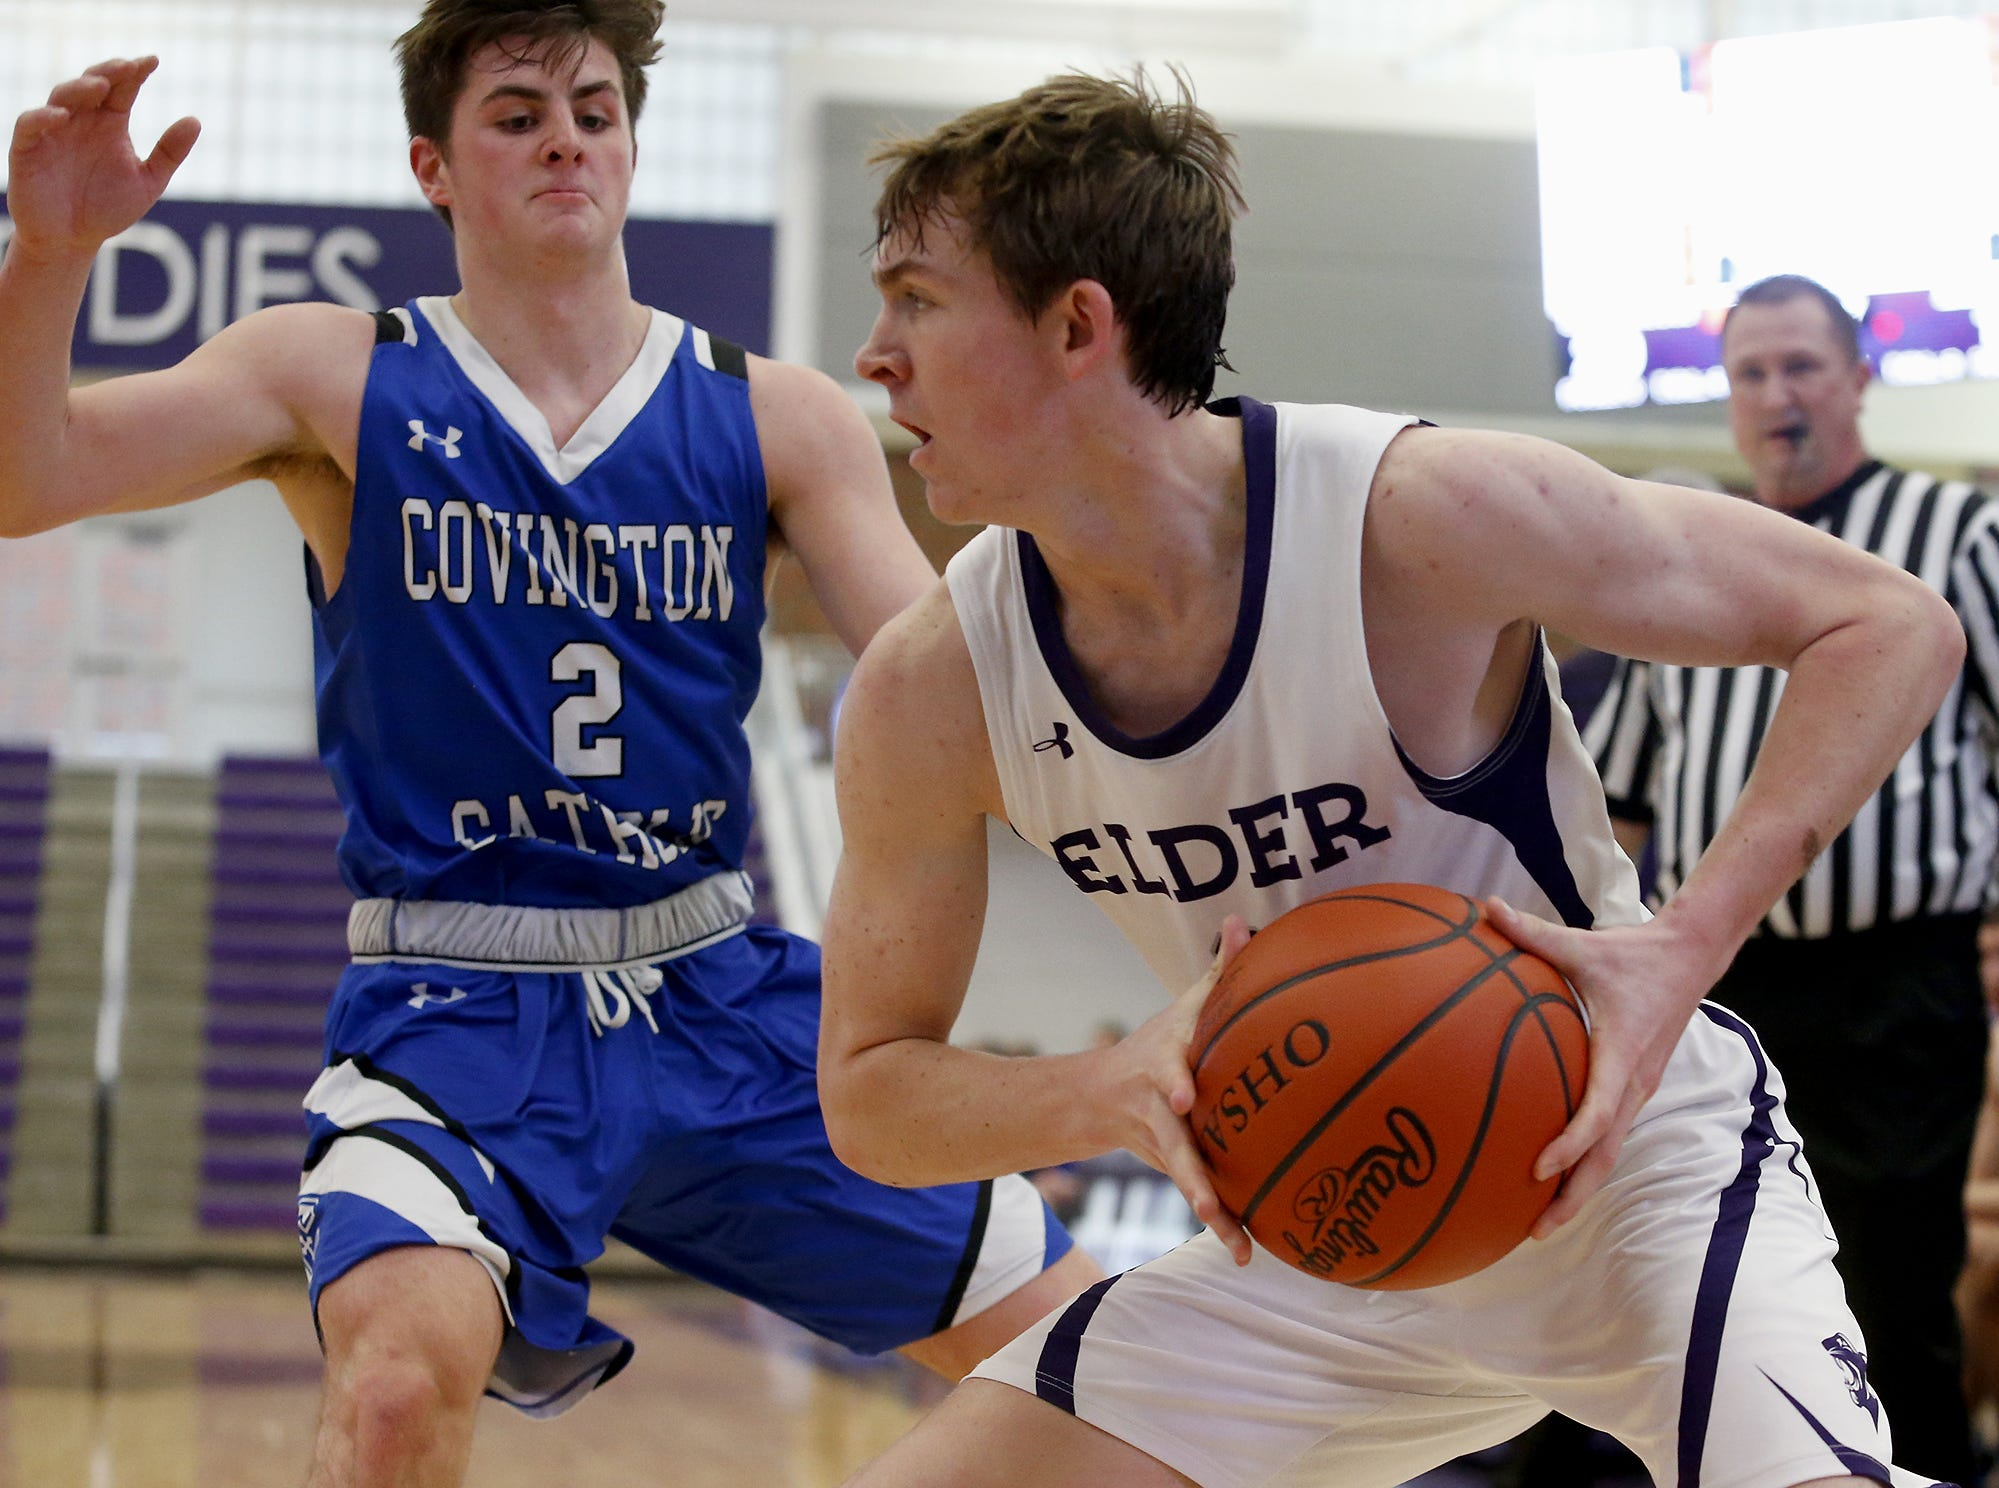 Elder guard Aidan Byrne looks for a teammate while covered by Covington Catholic guard Grant Disken during the Midwest King Classic at Jerry Lucas Court in Wade E. Miller Arena in Middletown Saturday, Jan. 19, 2019.